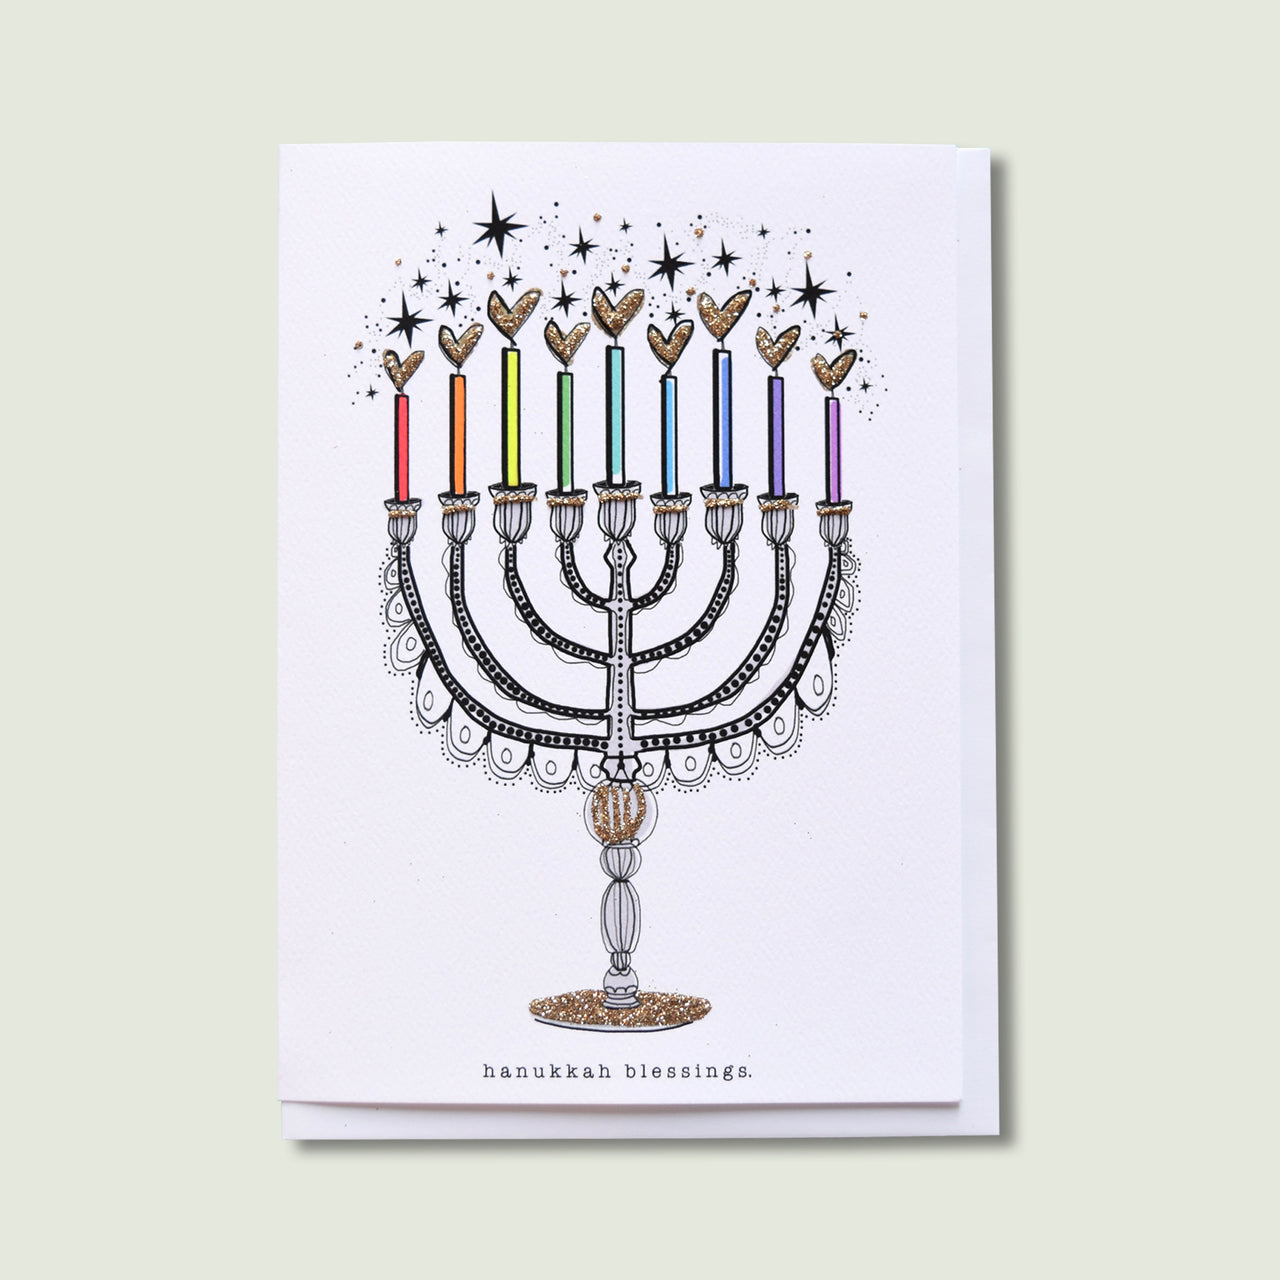 Hanukkah Blessings